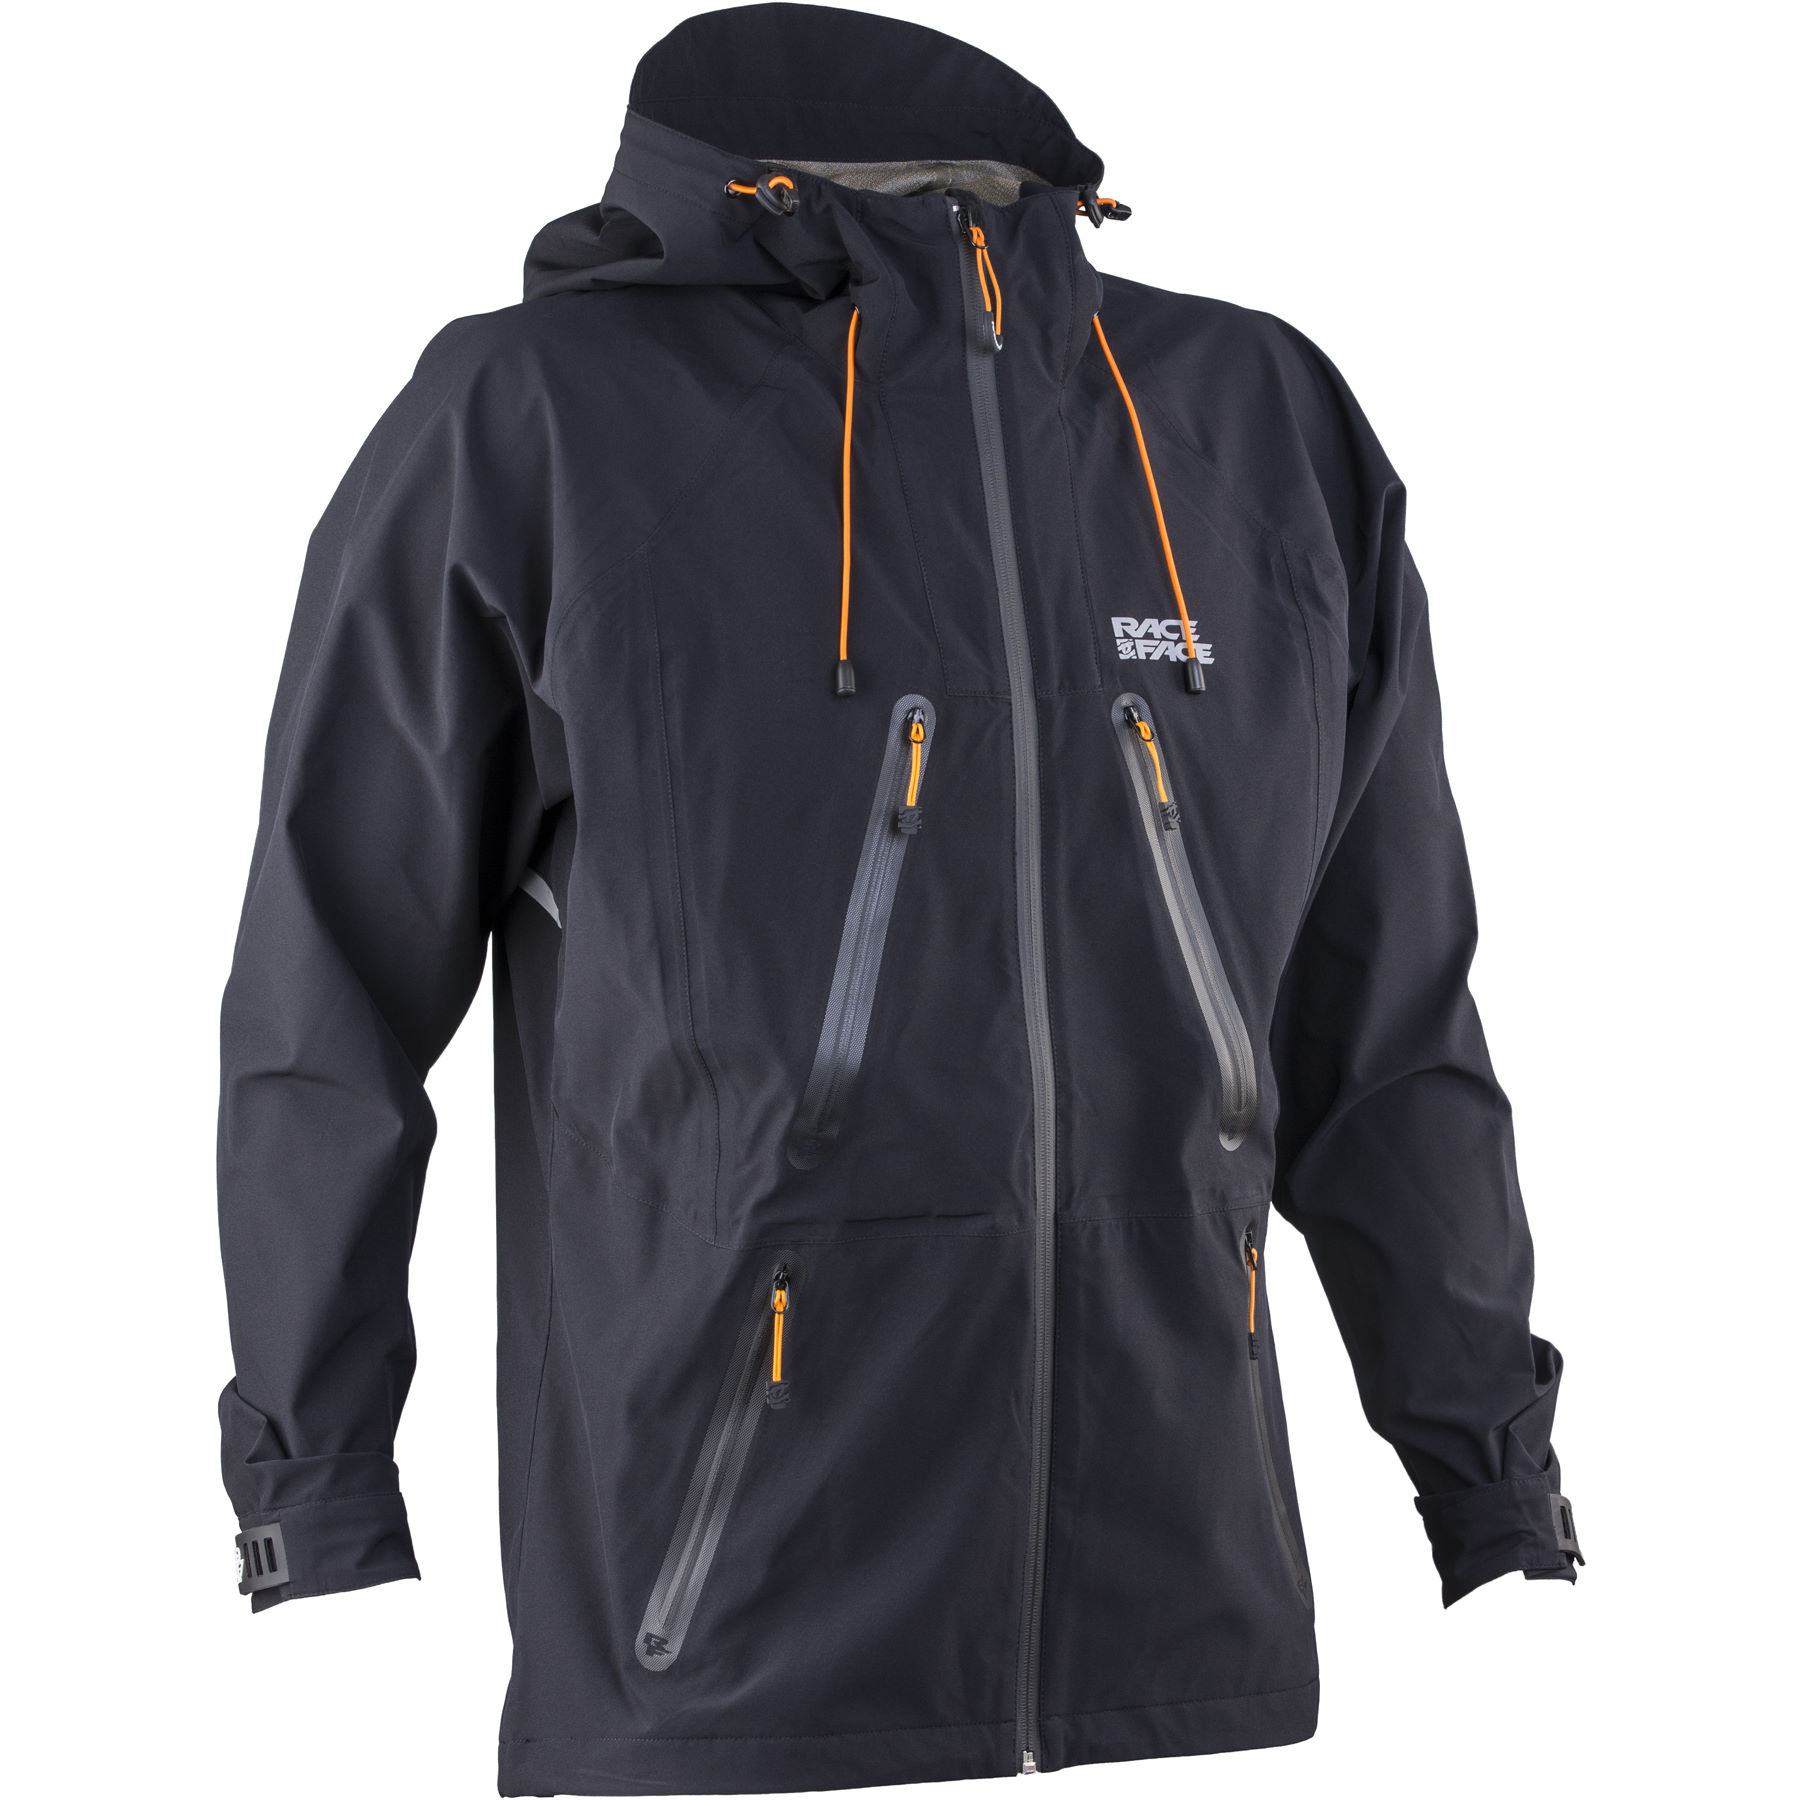 Wiggle Race Face Agent Softshell Jacket Cycling